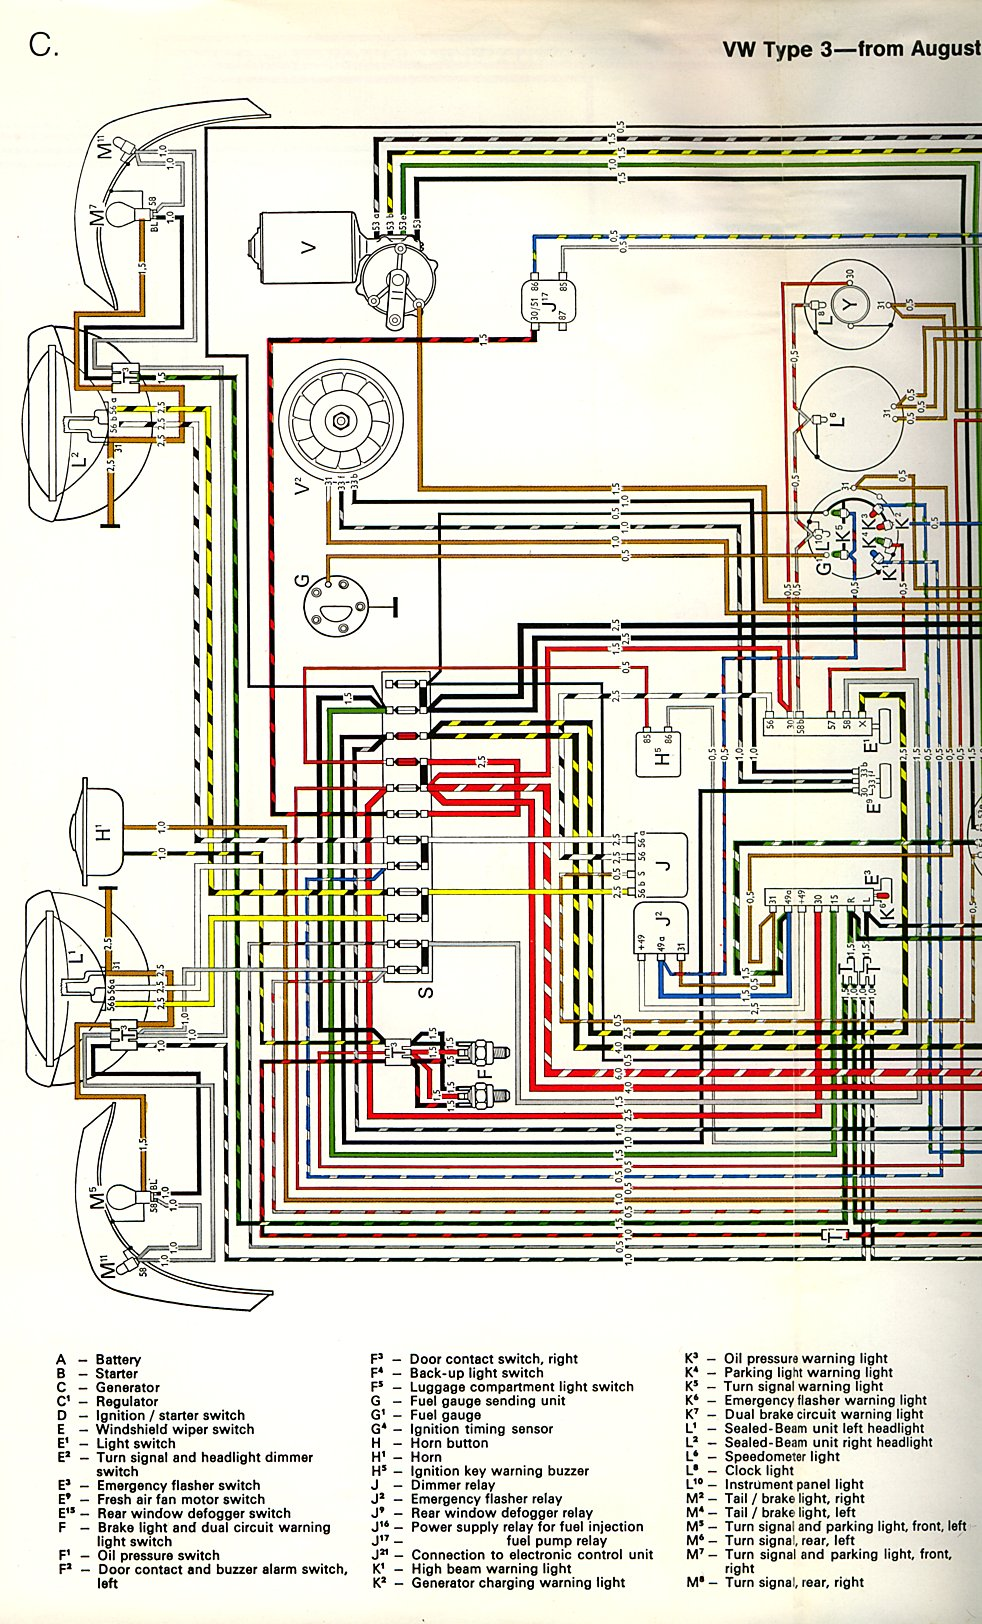 Thesamba Com Type 3 Wiring Diagrams 1968 VW Dash Wiring Vw Type 3 Wiring  Diagram